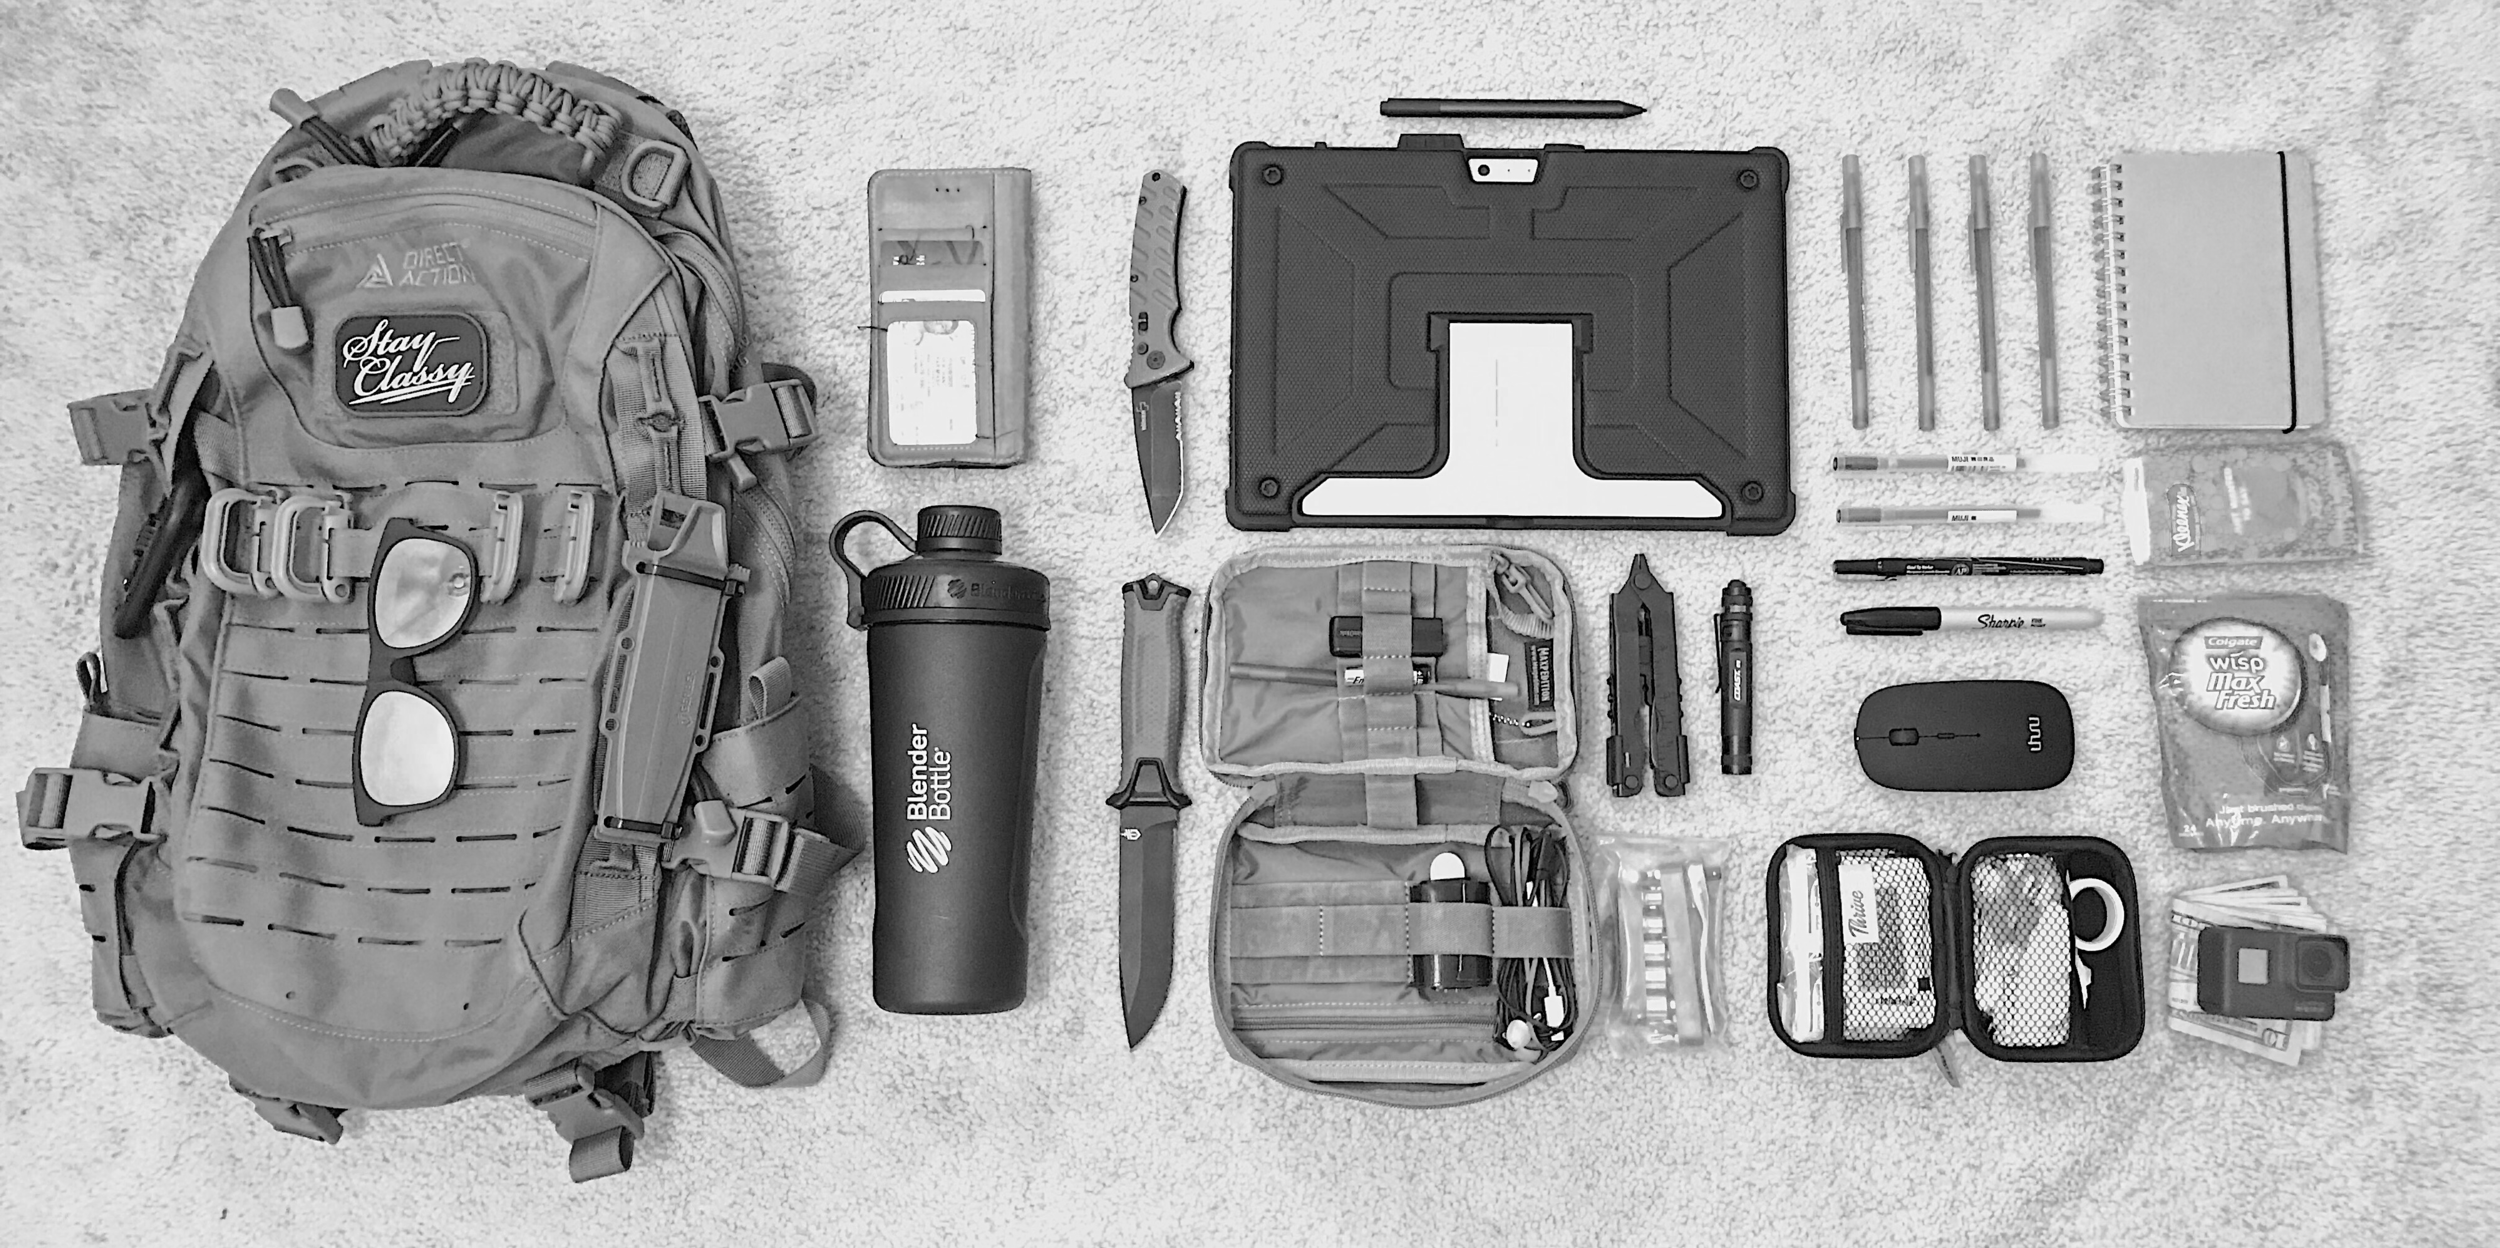 Example of an individuals EDC dump, photographed during initial research interviews